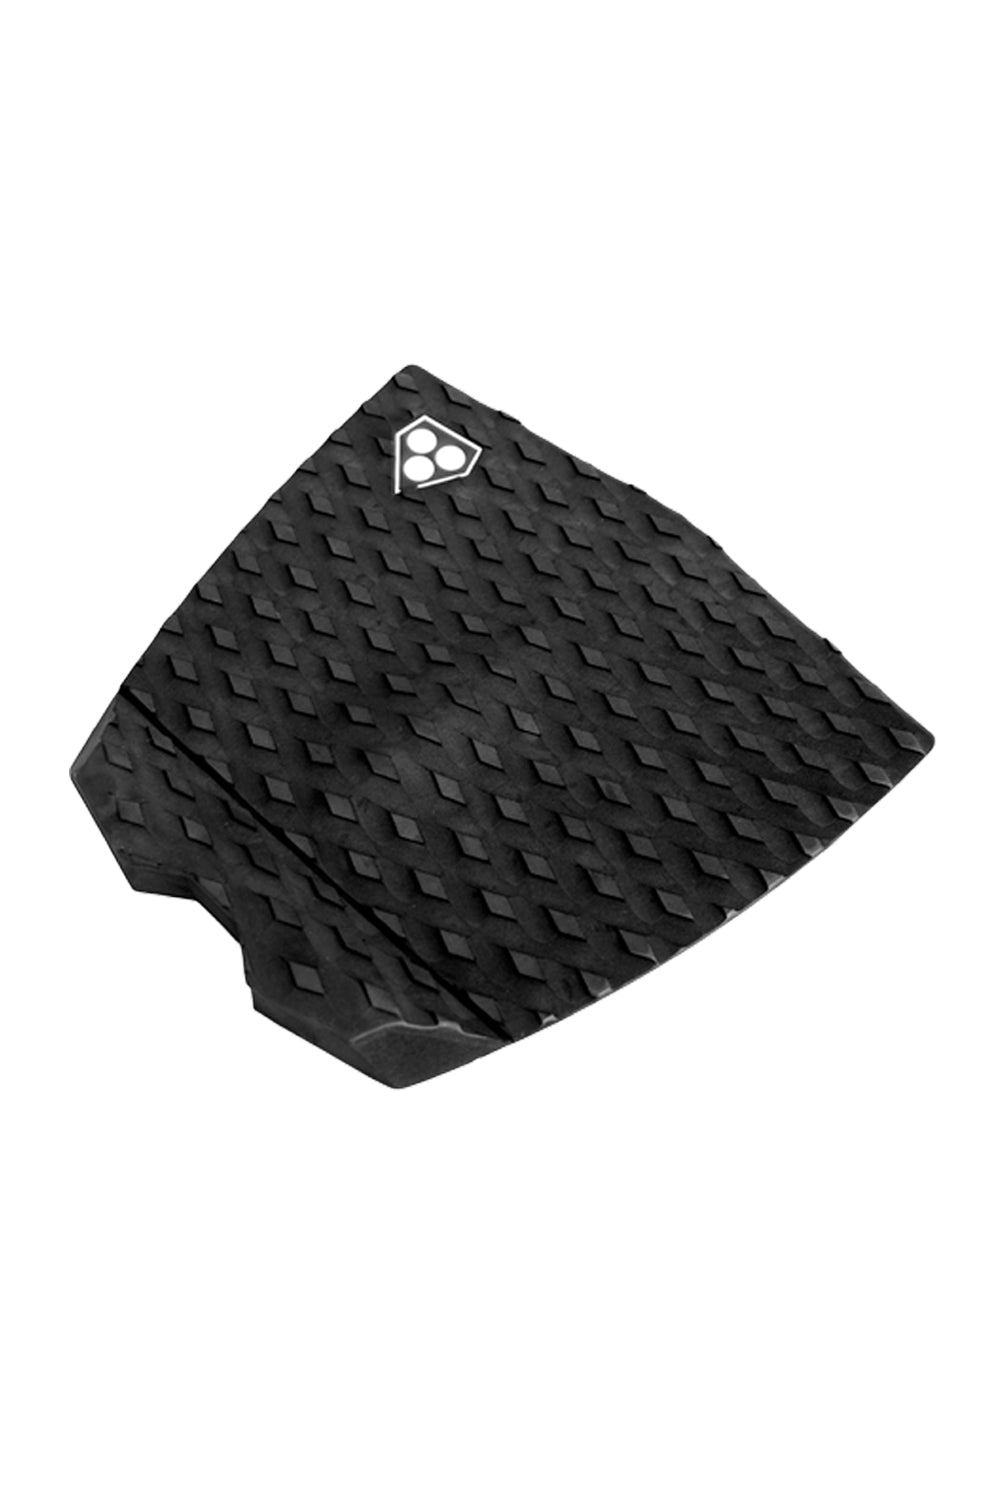 Gorilla Phat one Traction Pad